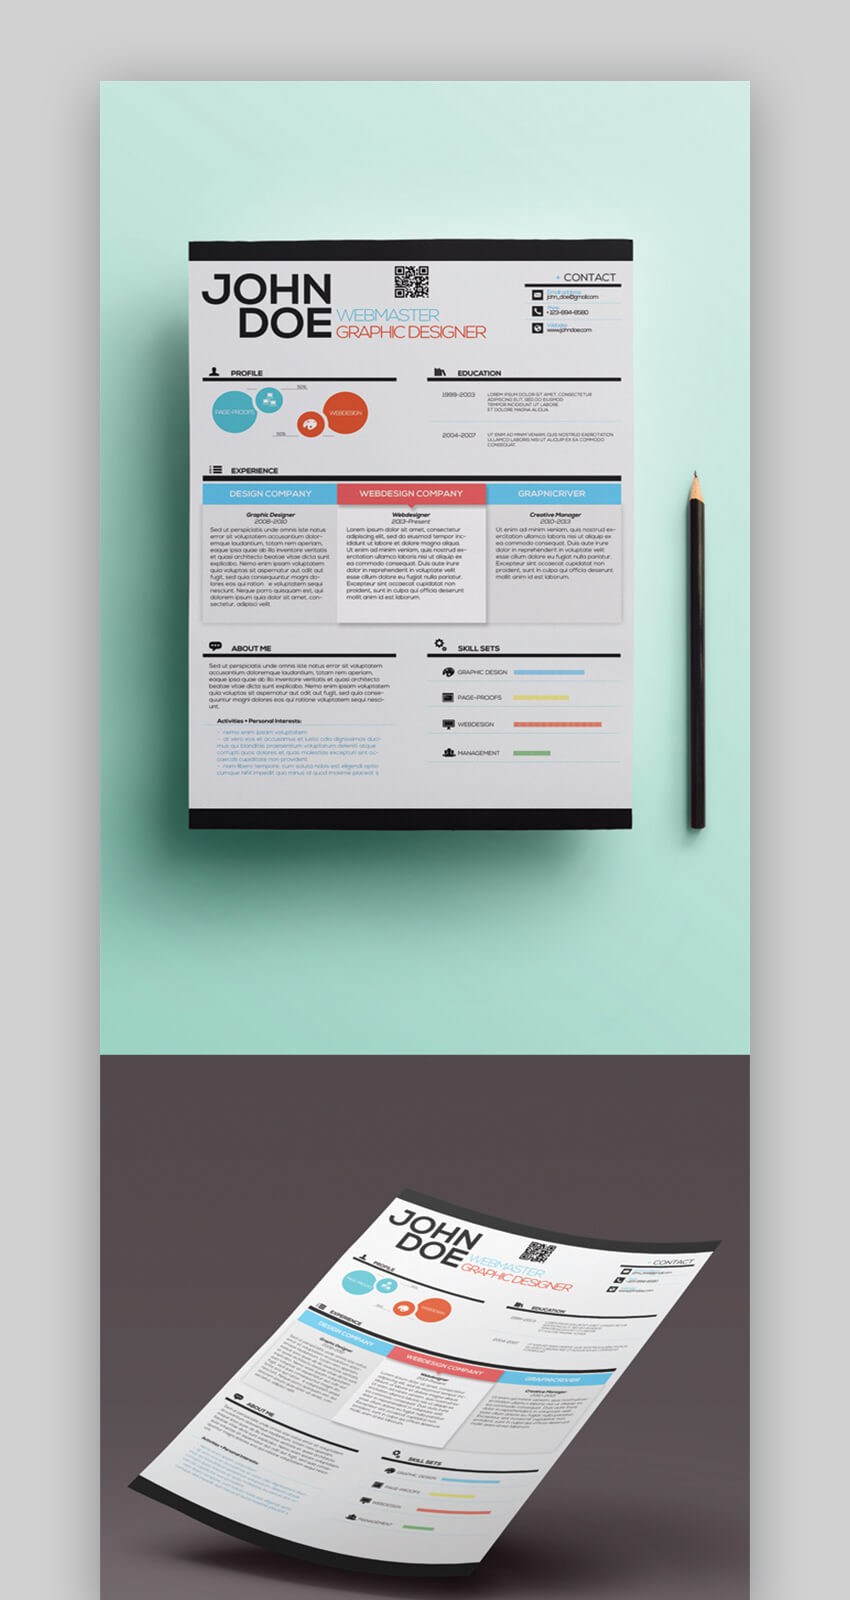 attractive eye catching resume cv templates with stylish aesthetics visually webmaster Resume Visually Attractive Resume